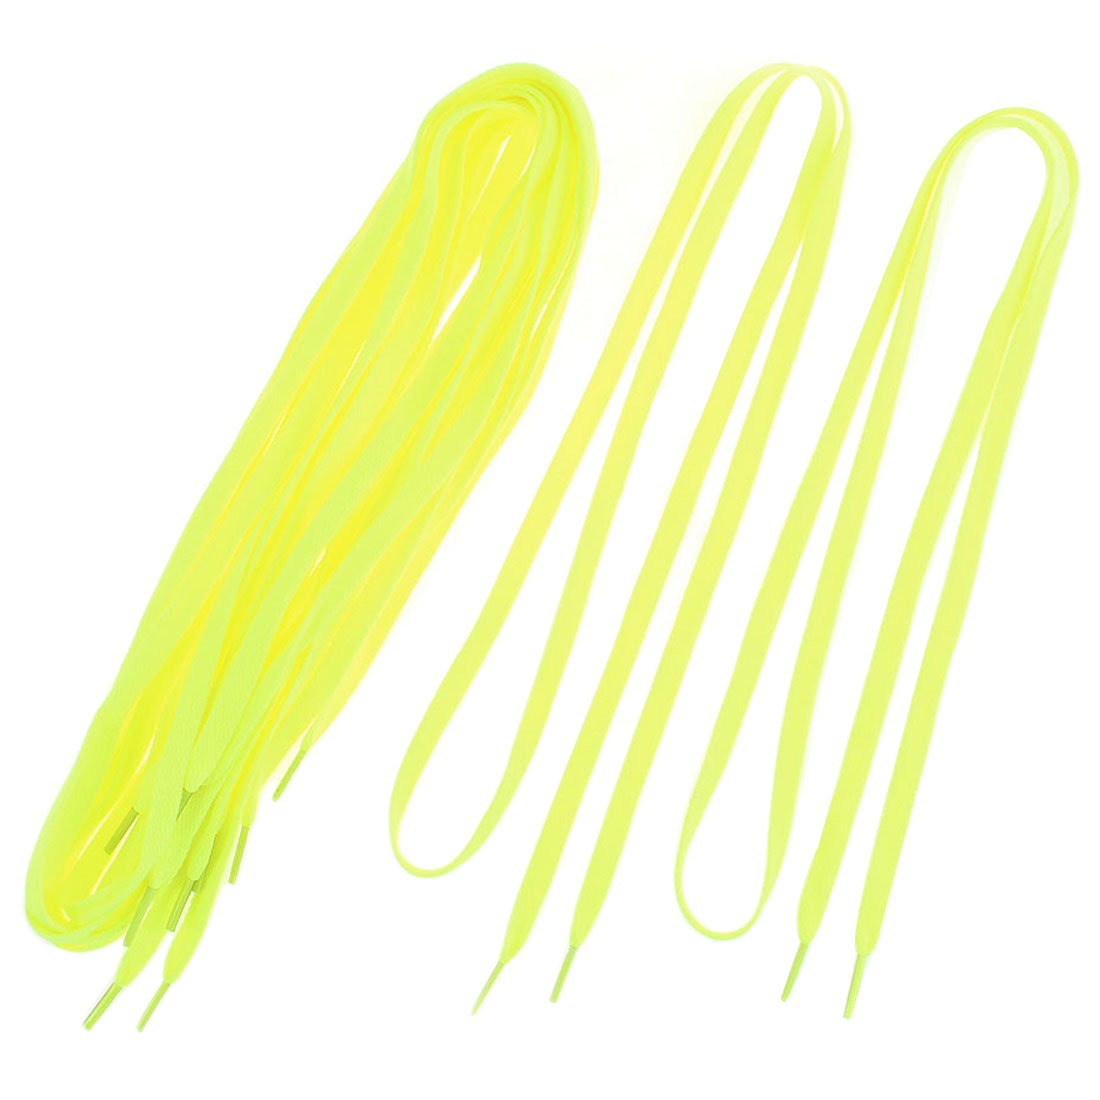 Canvas Sneakers Sports Shoes Flat Shoelaces String Yellow 110cm Length 5 Pairs